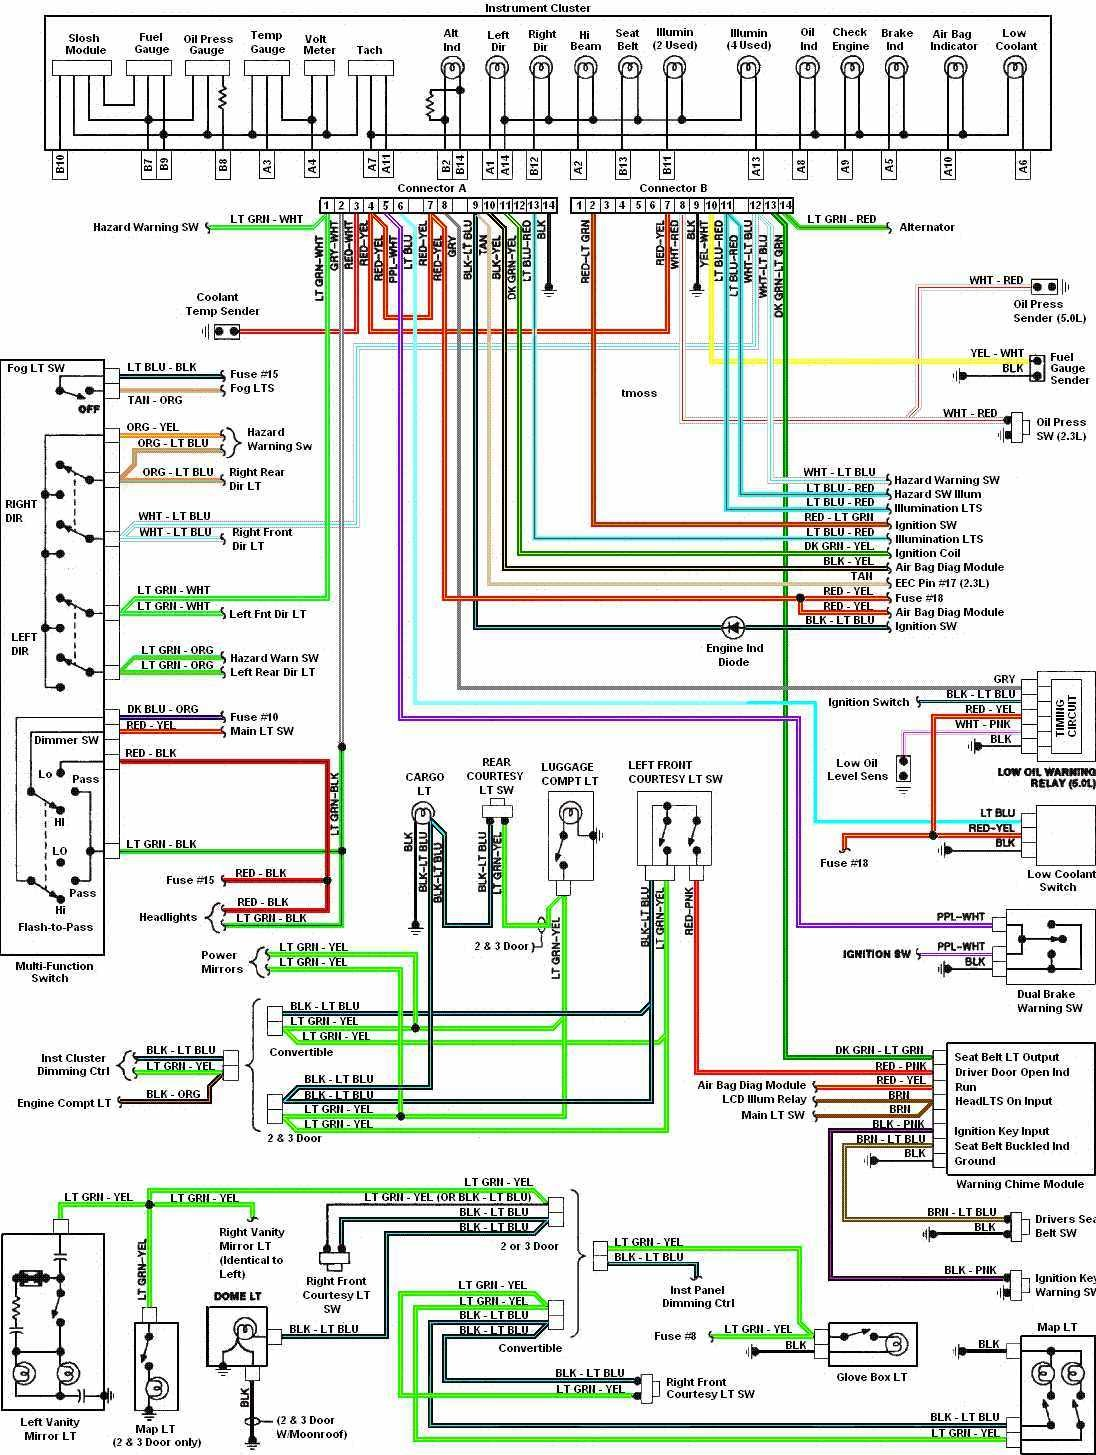 diagram] for 03 f250 radio wiring diagram full version hd quality wiring  diagram - diagramsomers.banficesare.it  banfi cesare